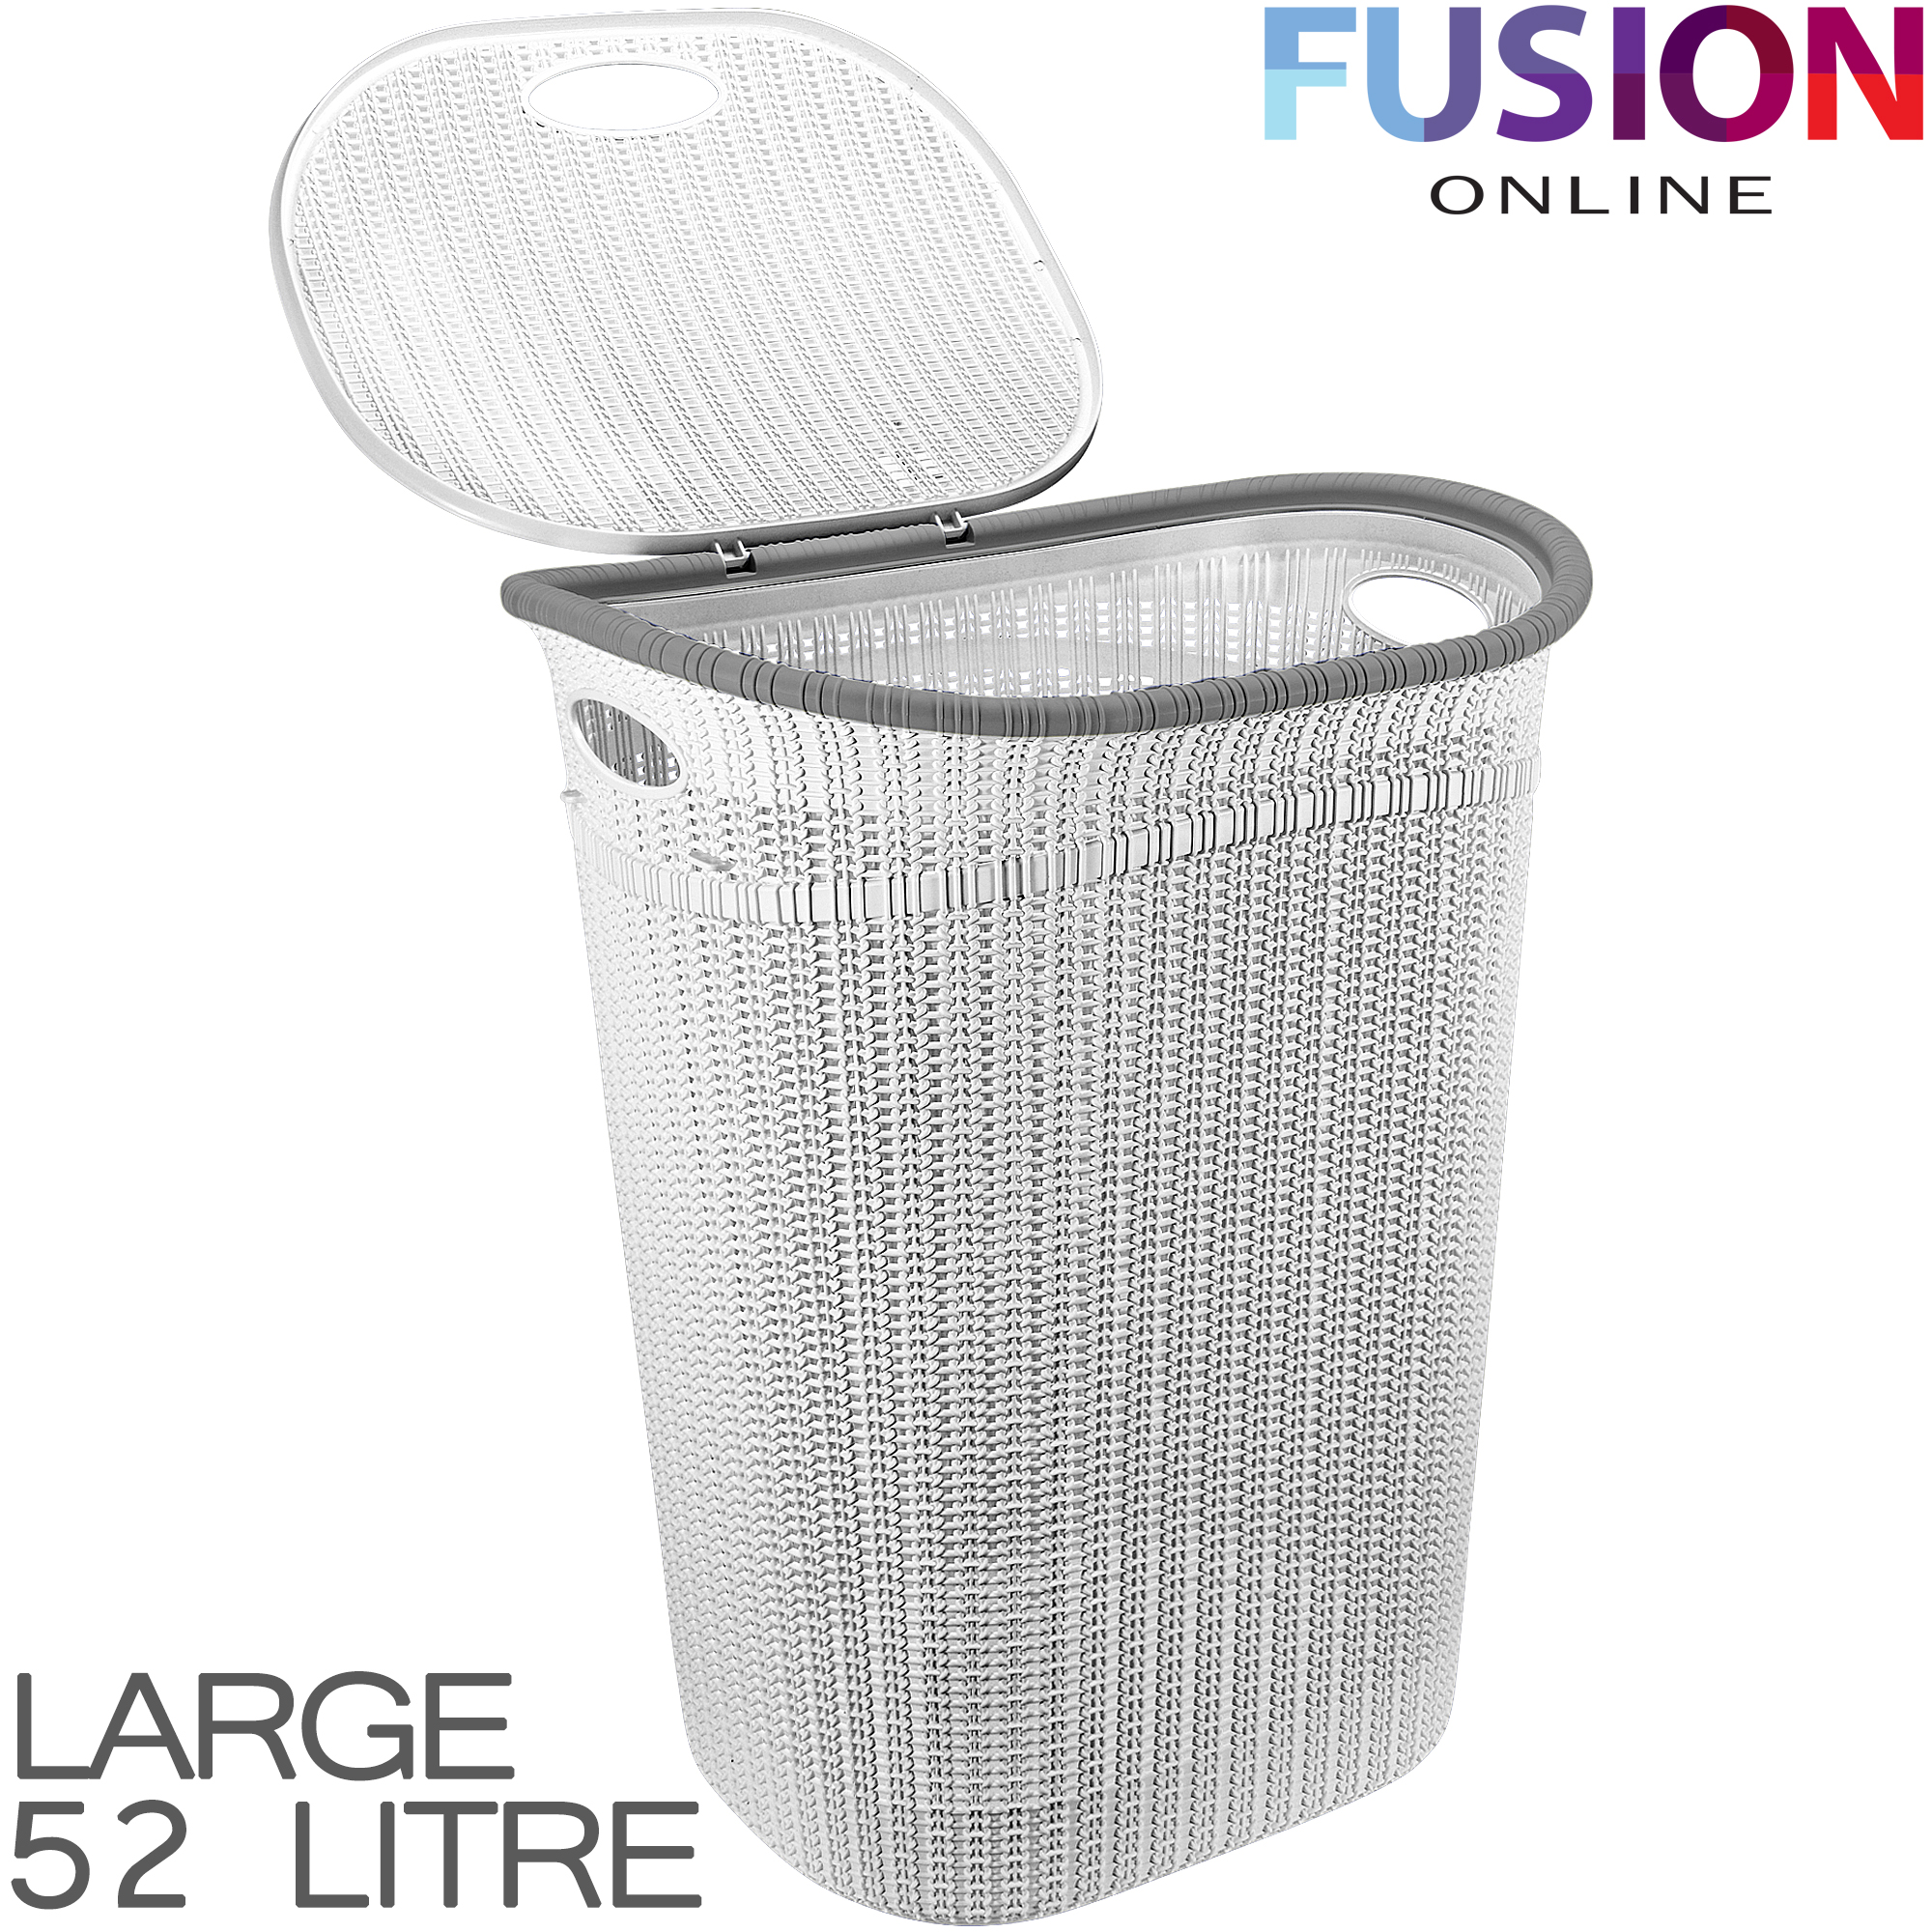 Plastic laundry basket washing clothes bin rattan knot style with handles lid ebay - Rattan laundry basket with lid ...